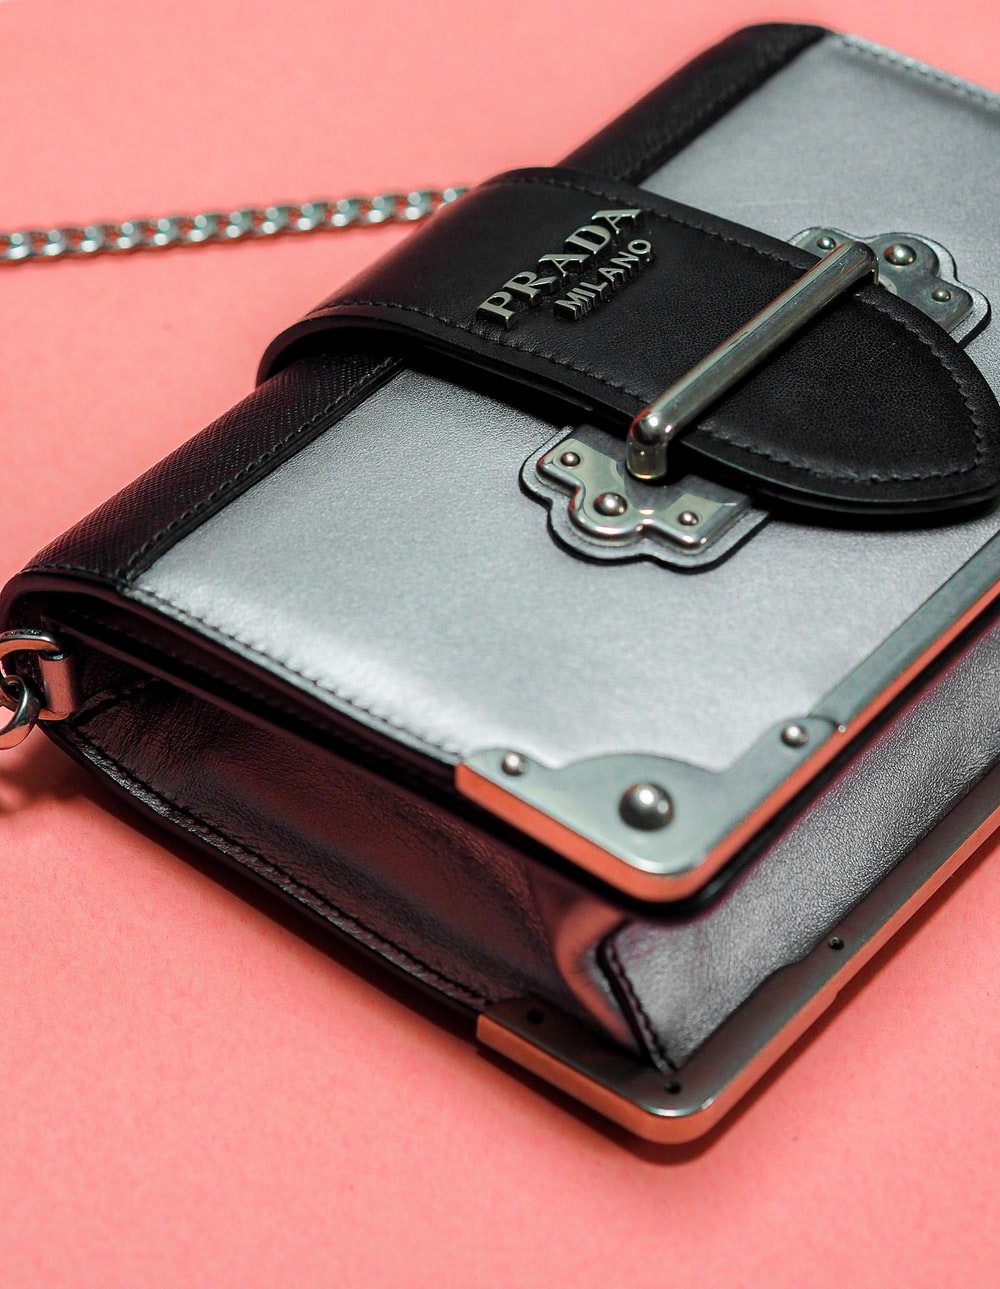 black leather case on red surface